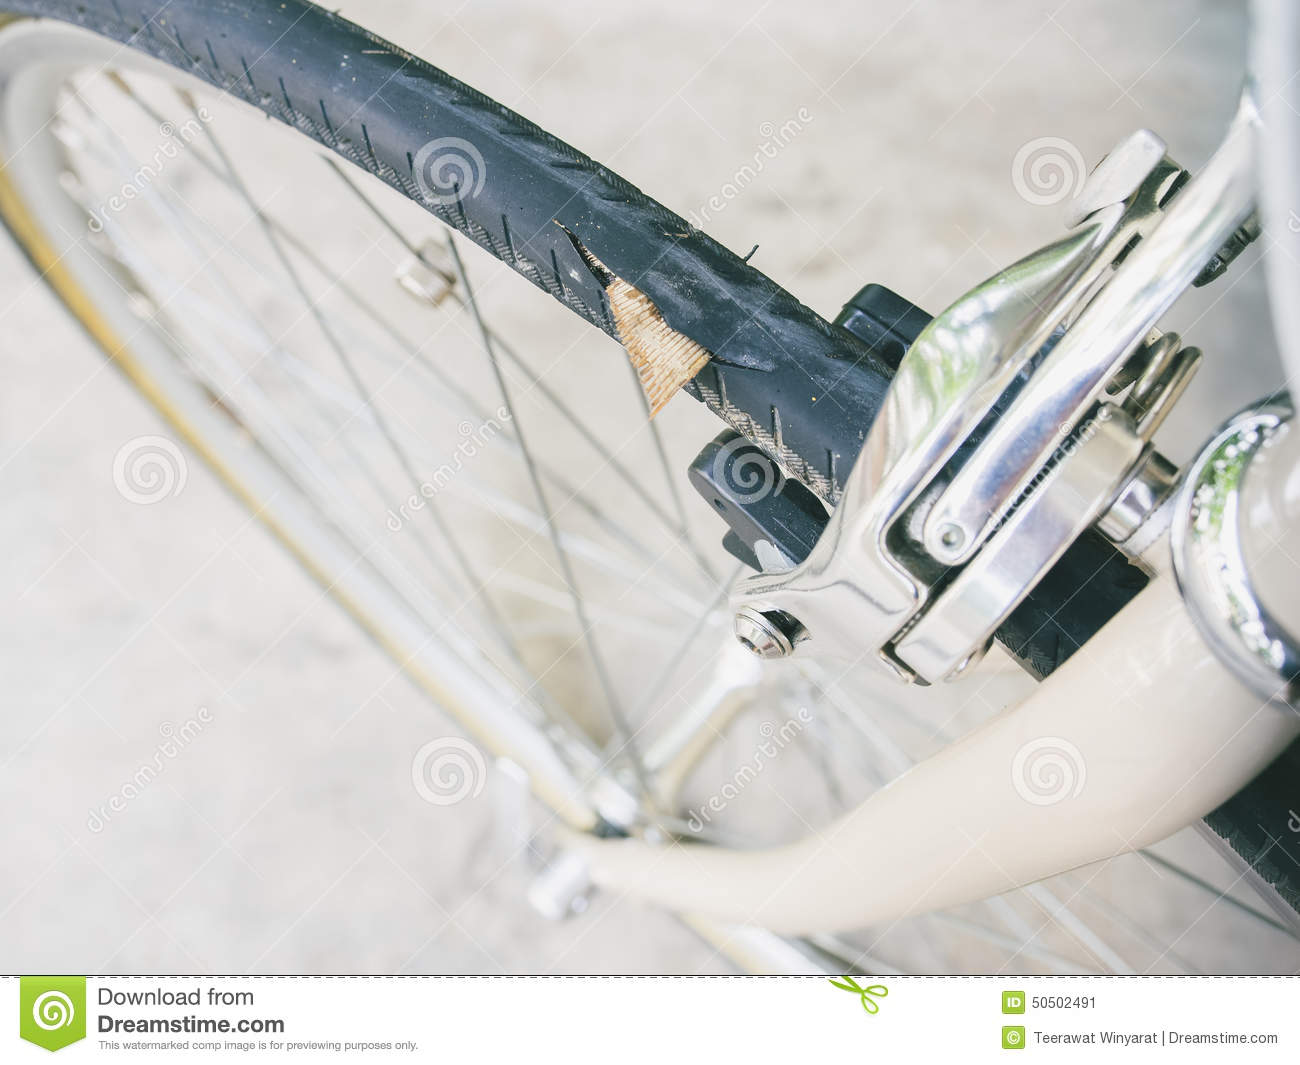 Punctured bicycle tire inner tube